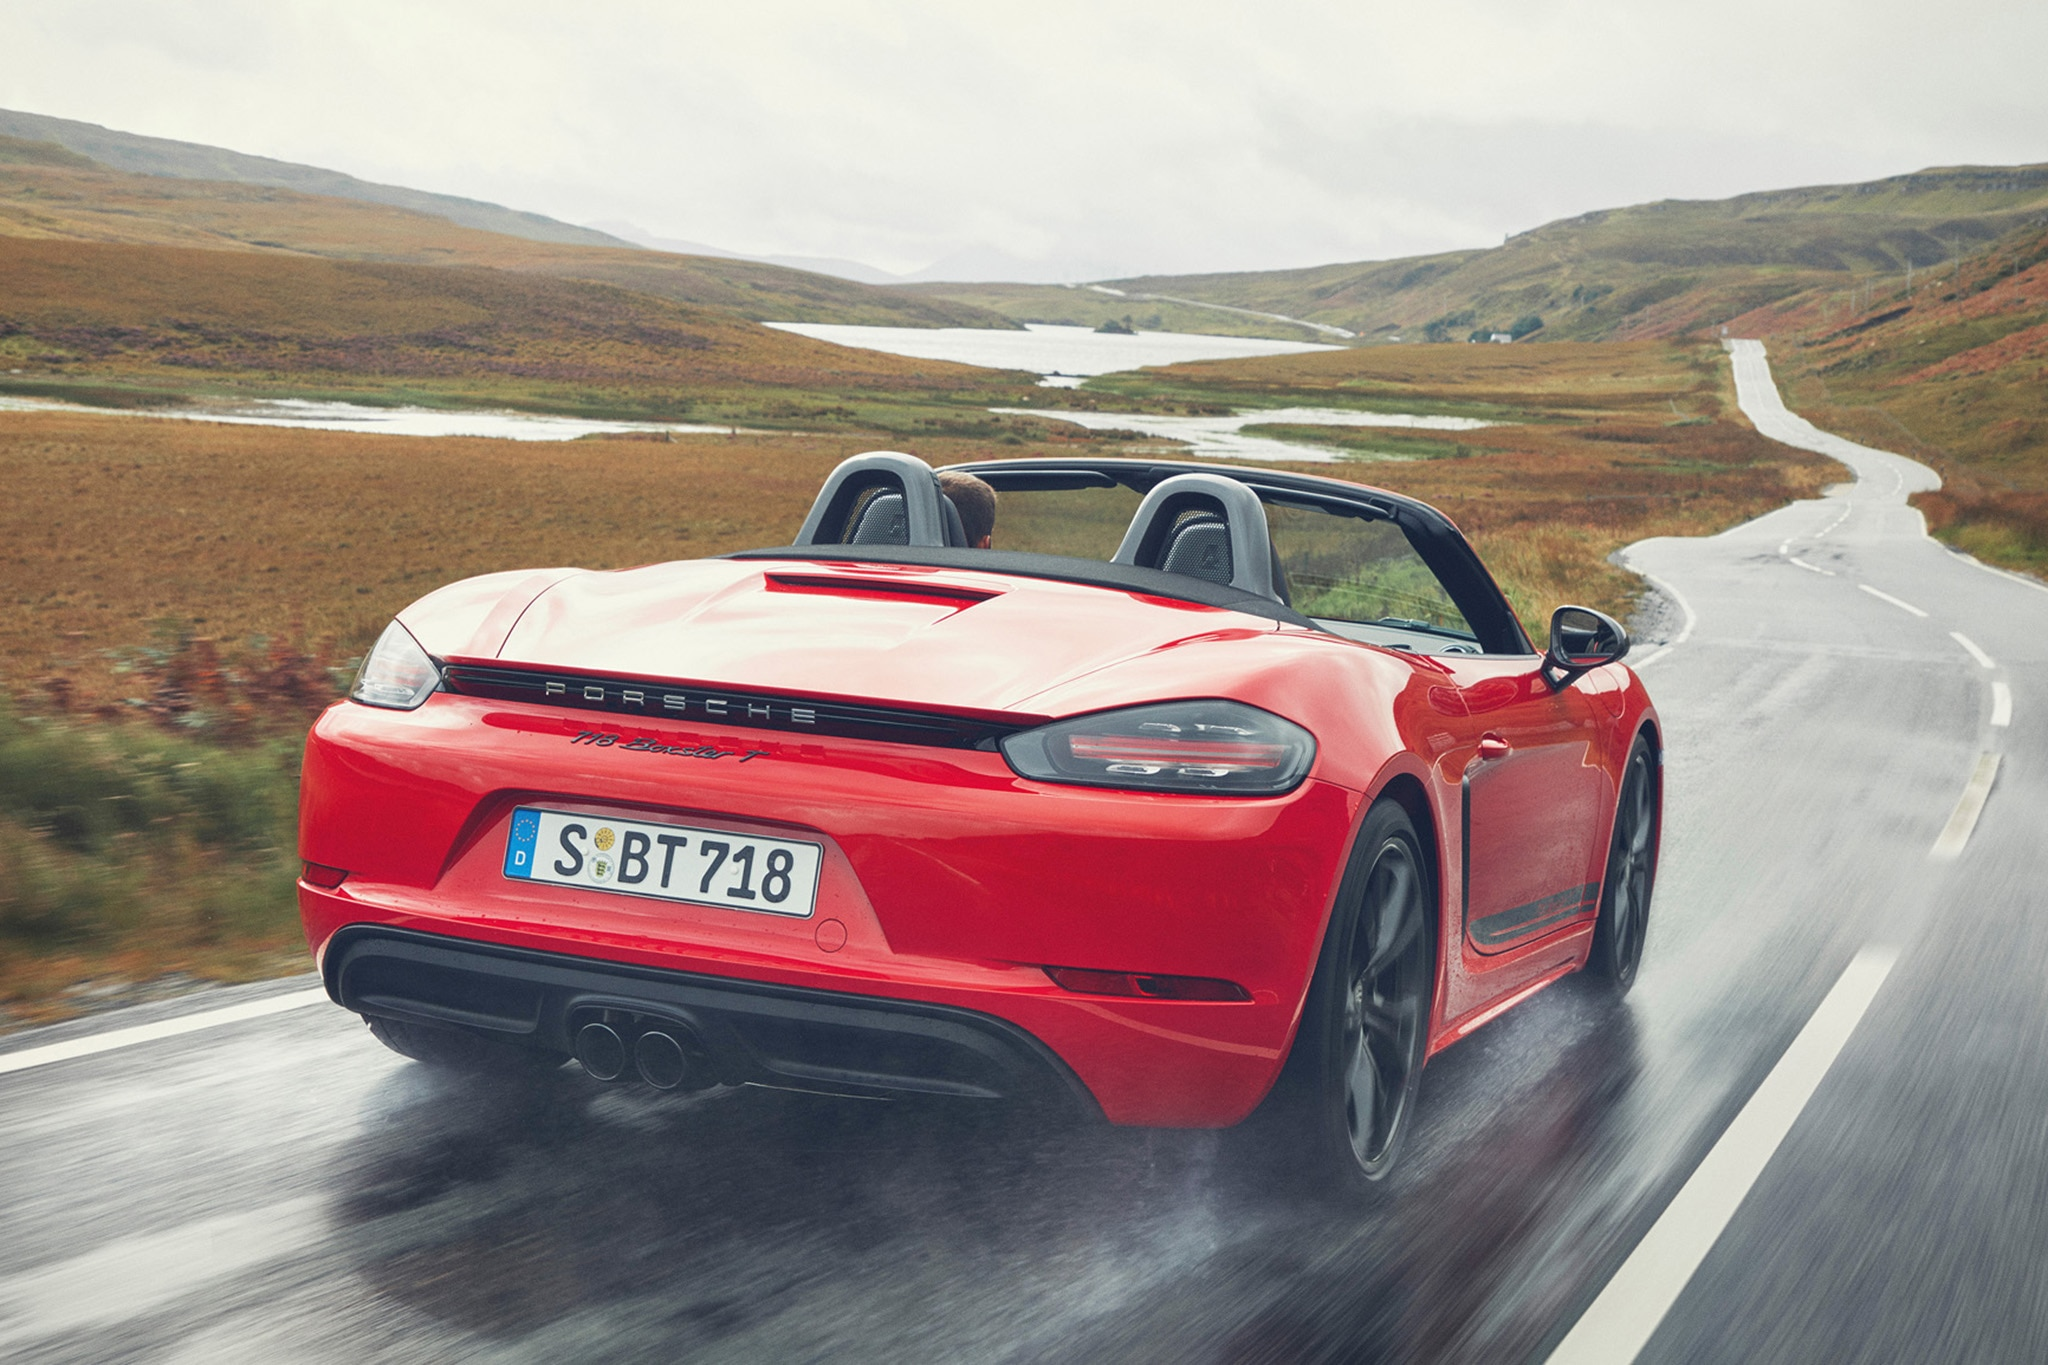 New Porsche 718 T Boxster And Cayman Bring Some Zing To 4-Cylinder Turbo Range